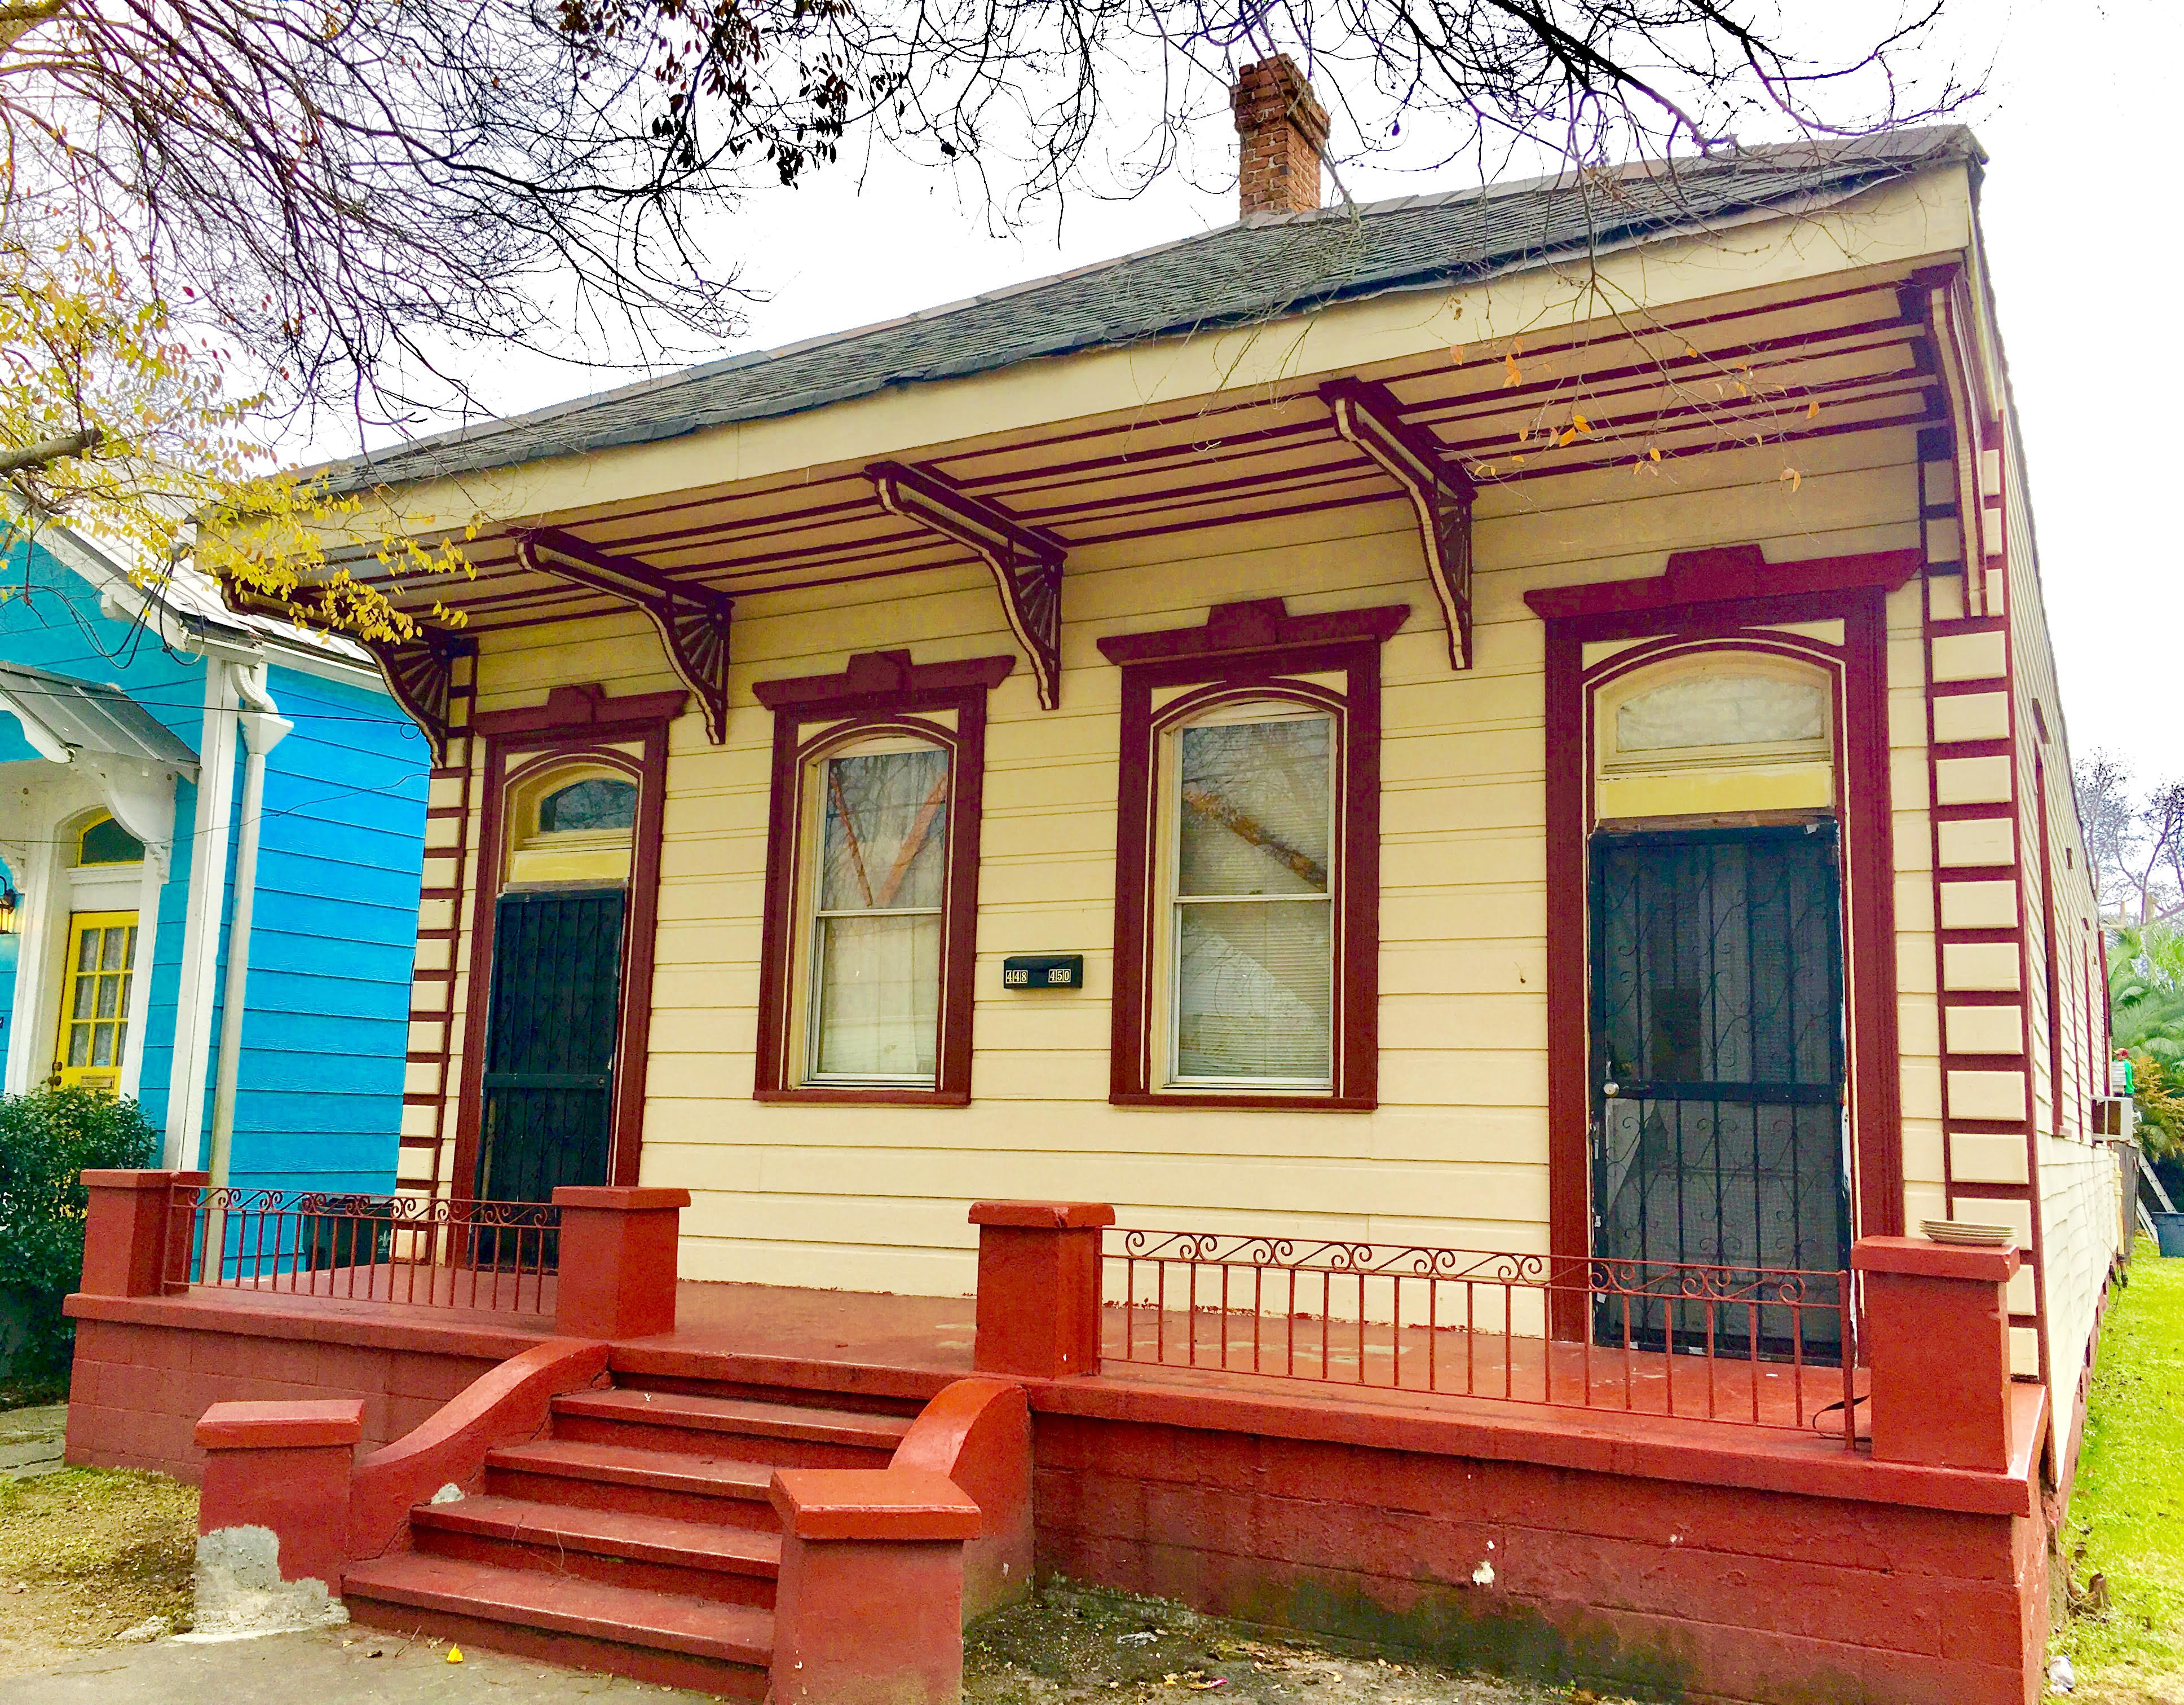 relocating-to-new-orleans-guide-tips-advice-and-real-estate/